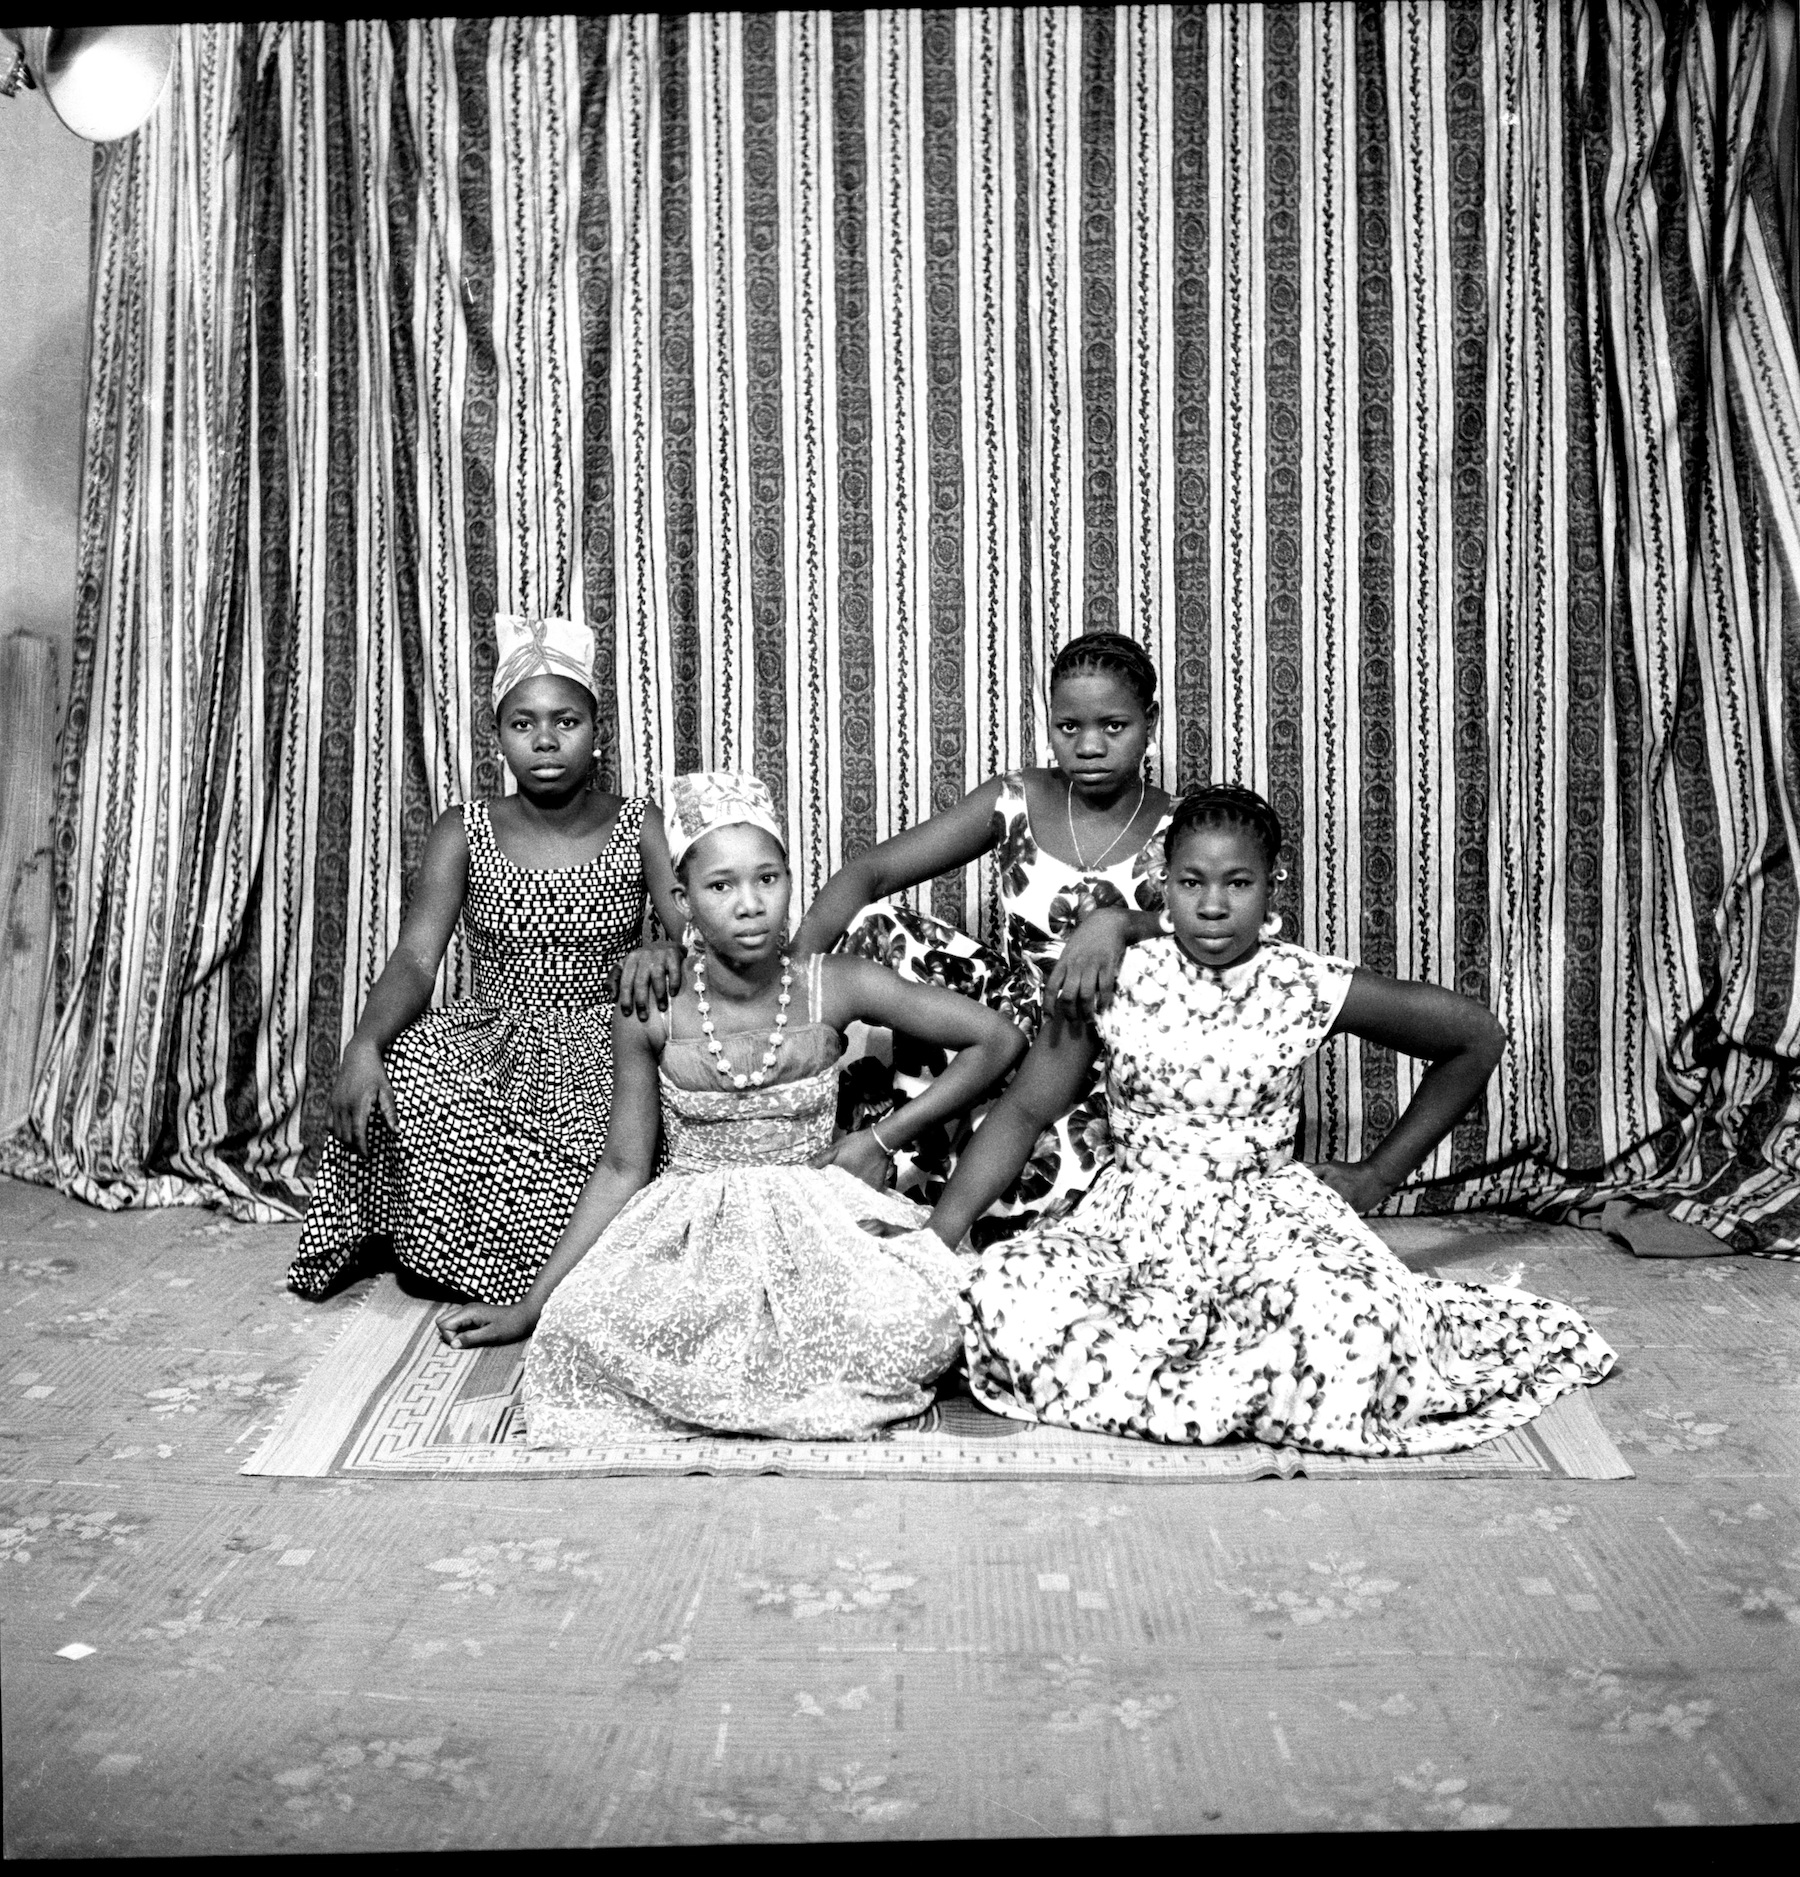 Abdourahmane Sakaly, Jeunes copines, May 1962. Courtesy the artist and Black Shade Projects